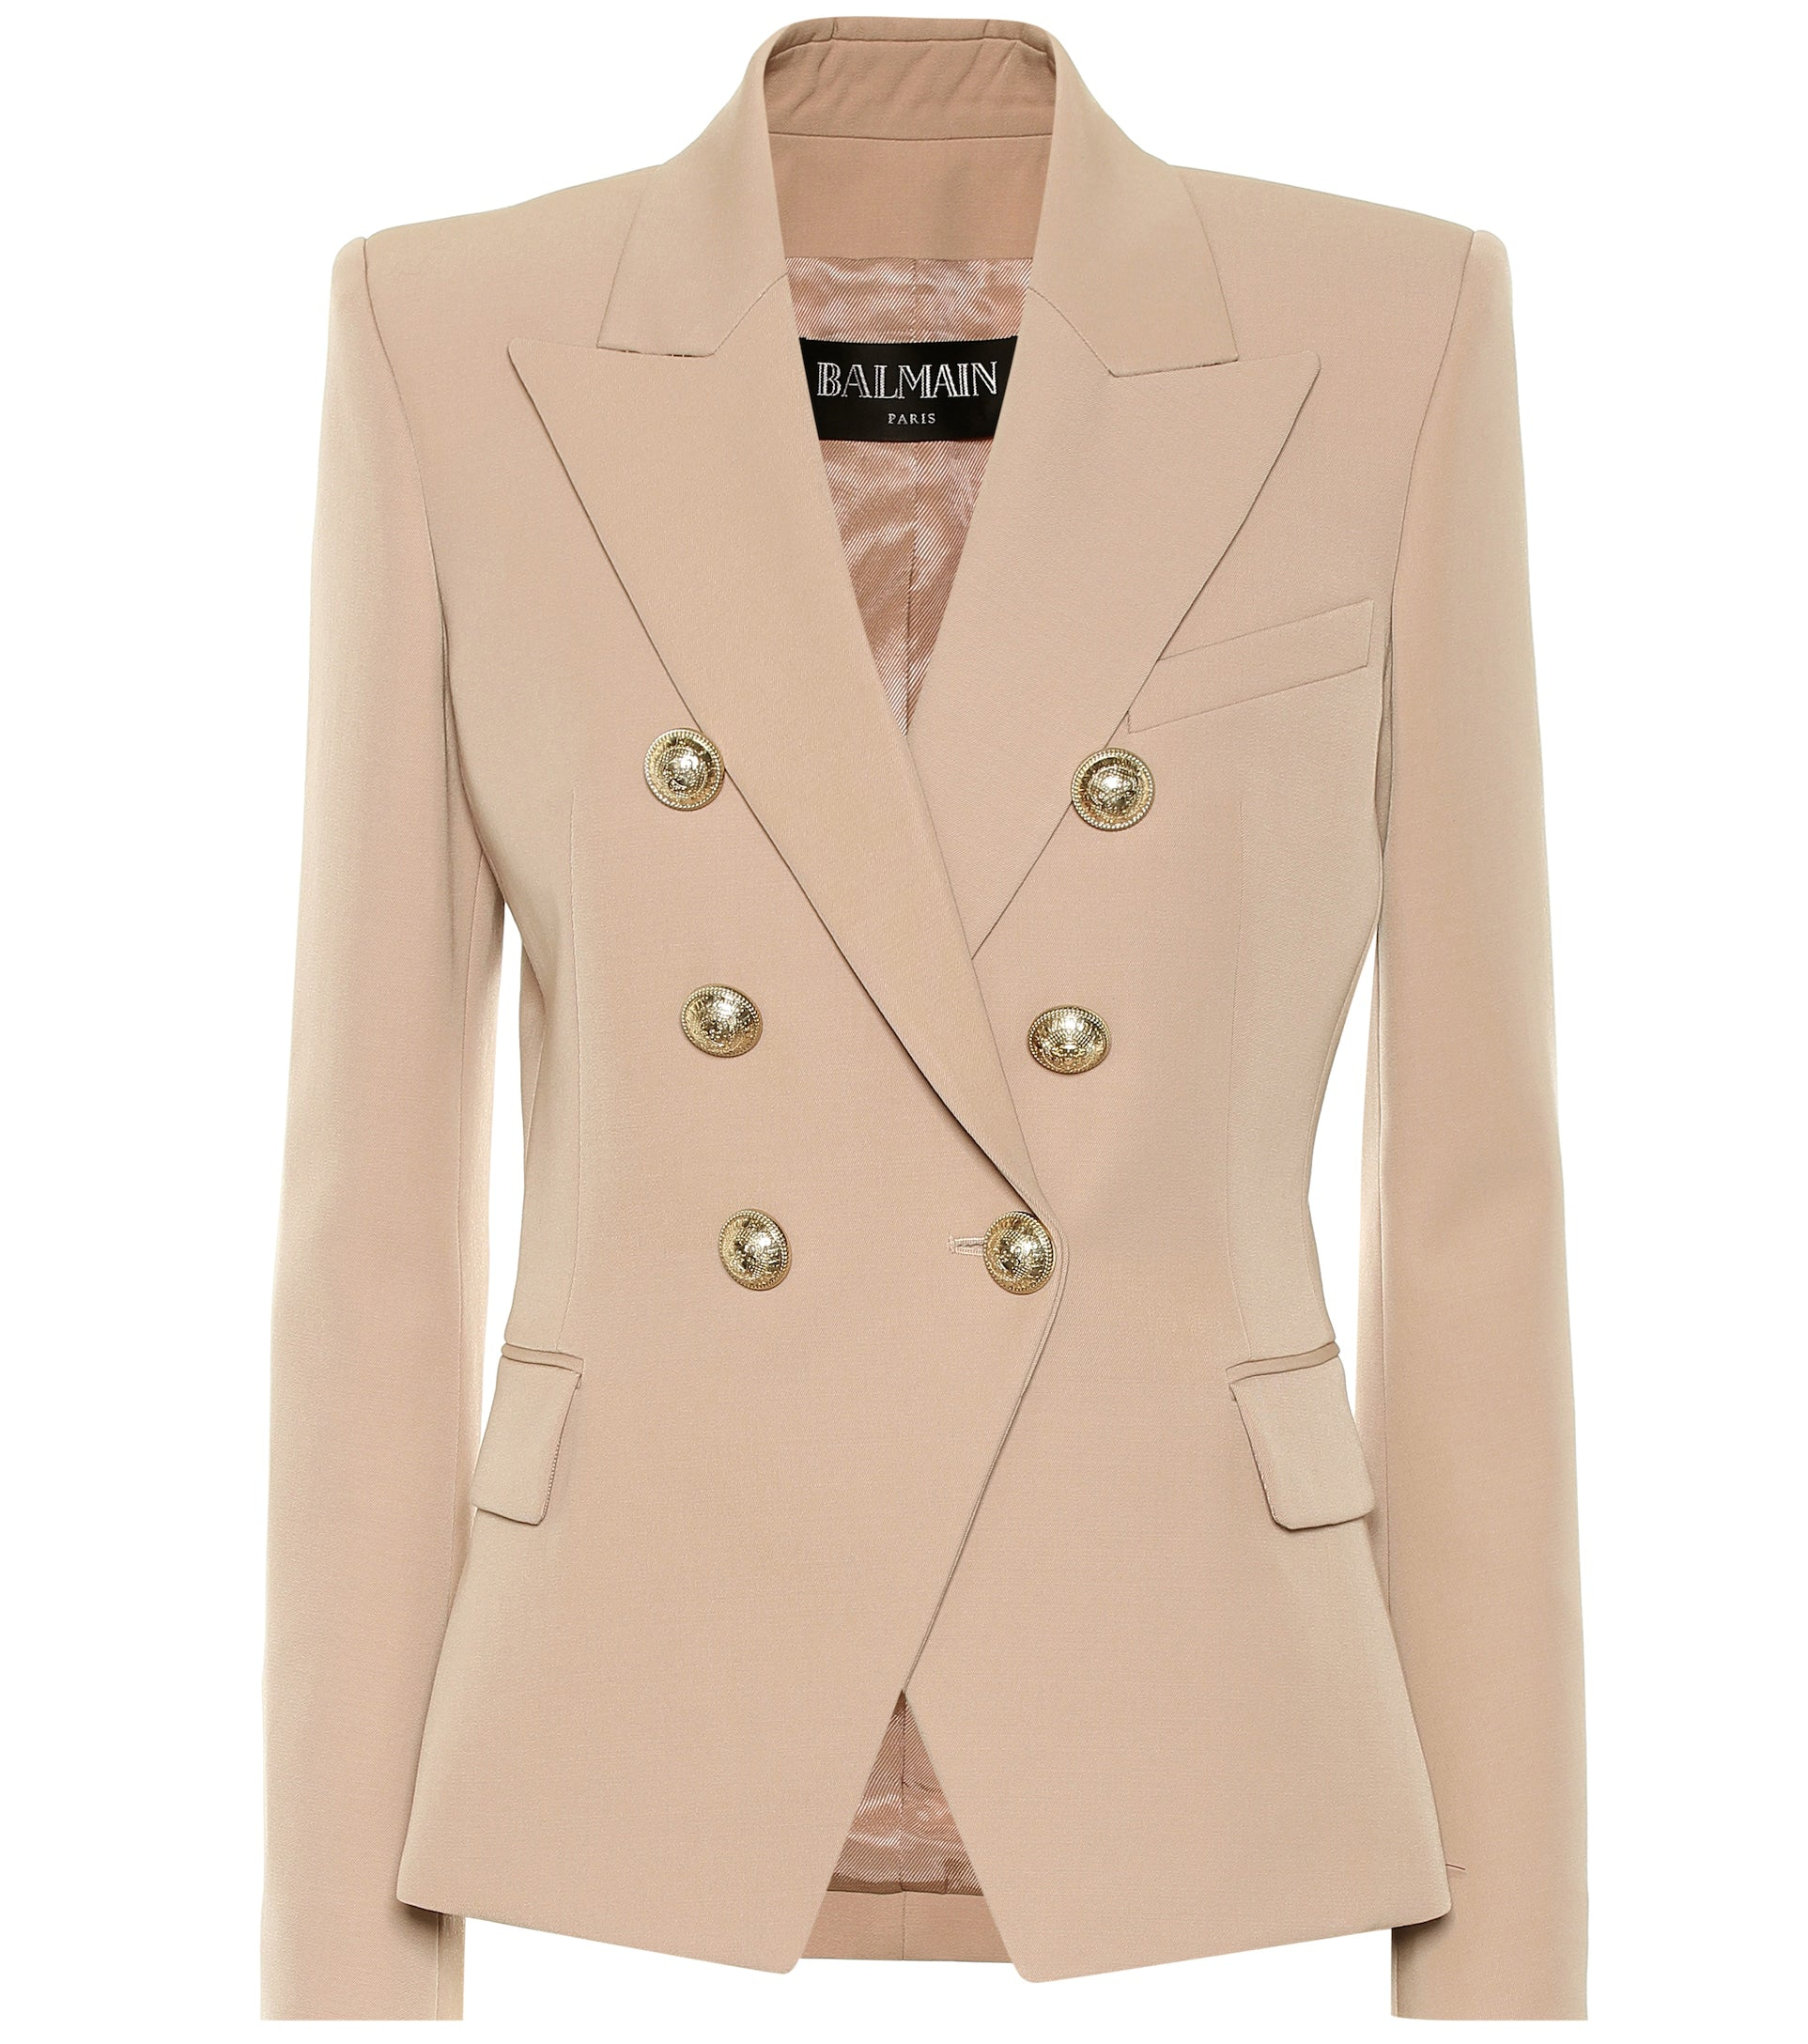 6 BUTTON JACKET NUDE